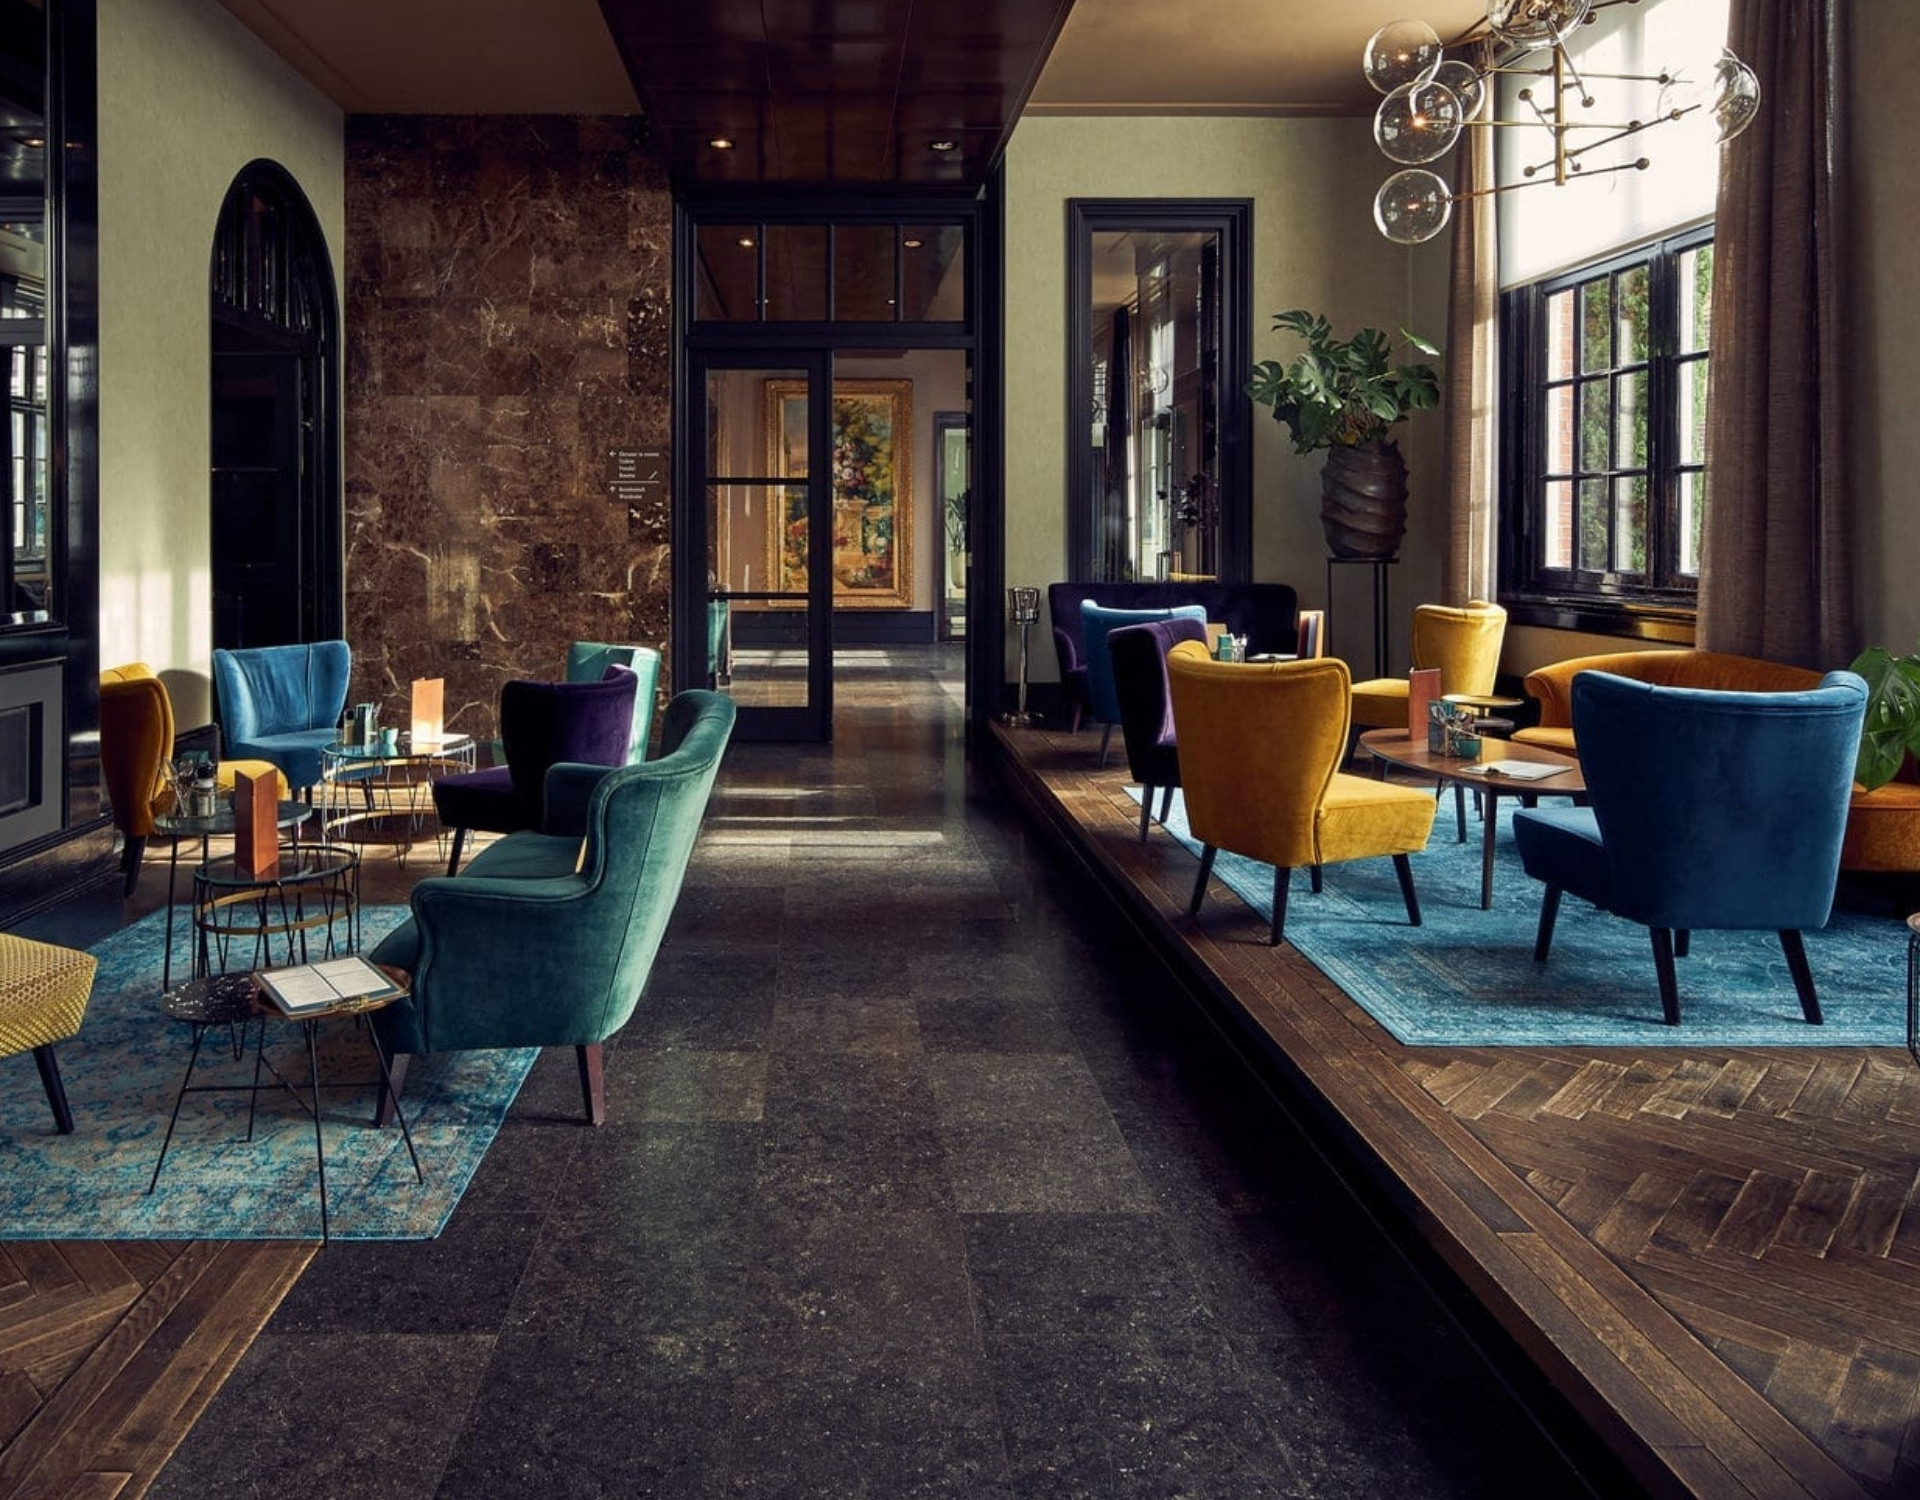 furniture and chairs in a hotel lobby in amsterdam